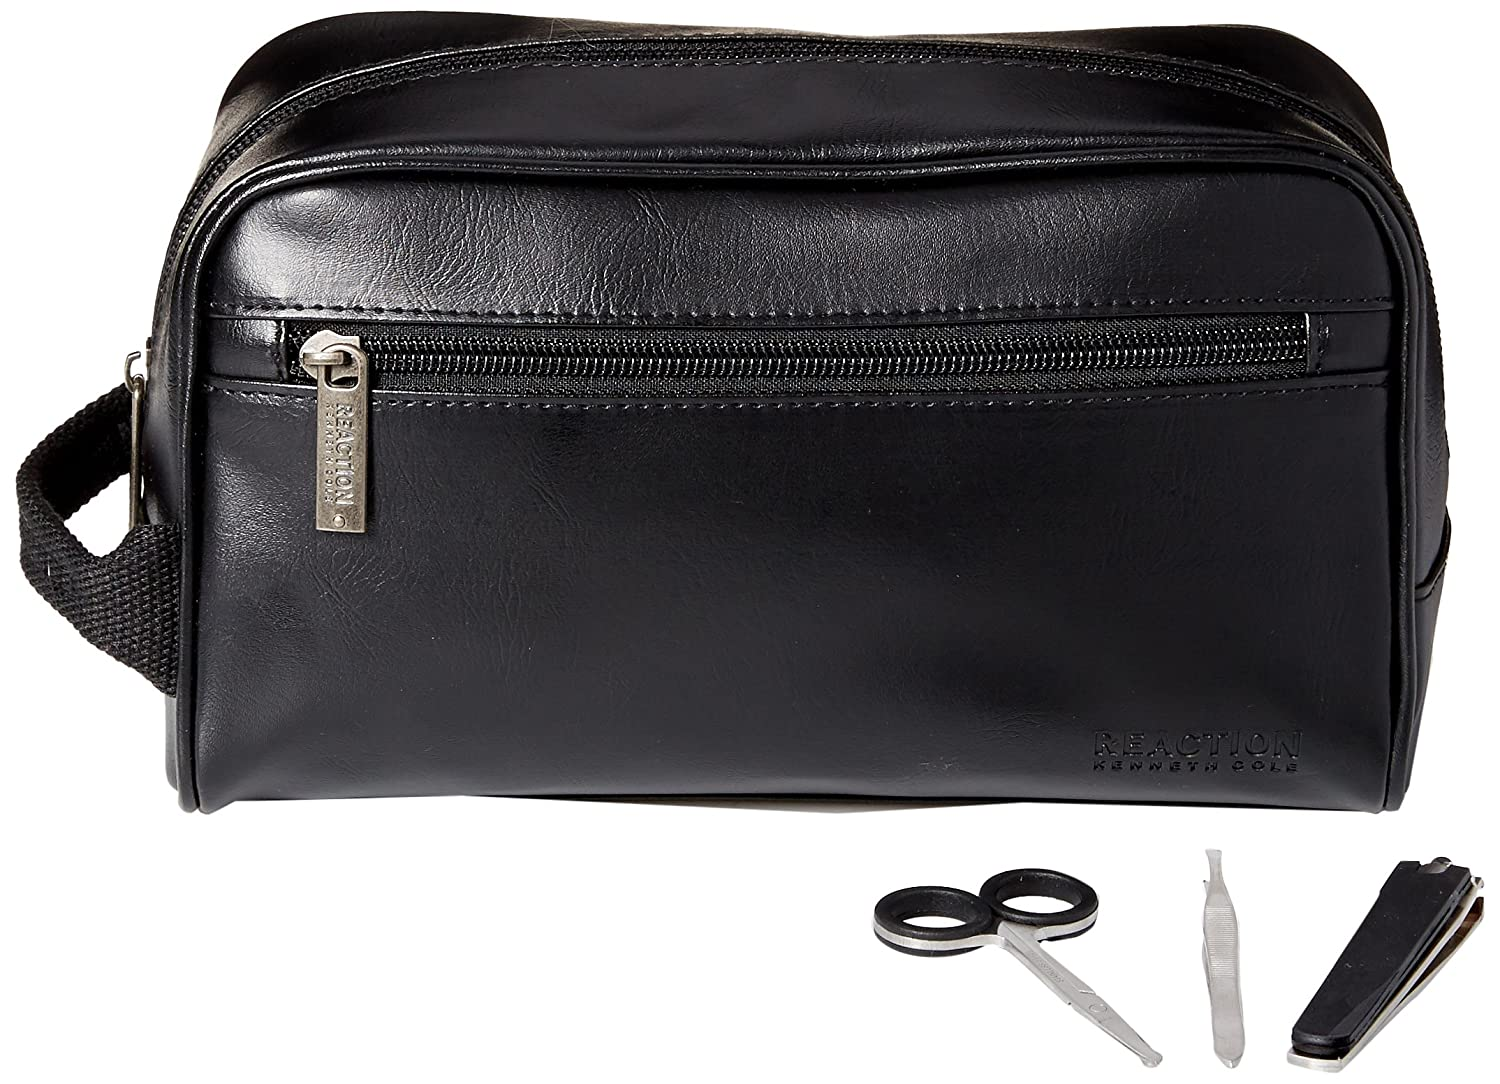 Kenneth Cole Reaction Men s Travel Toiletry Bag Shaving Kit with 3 Piece  Manicure Set 4faab32c98575